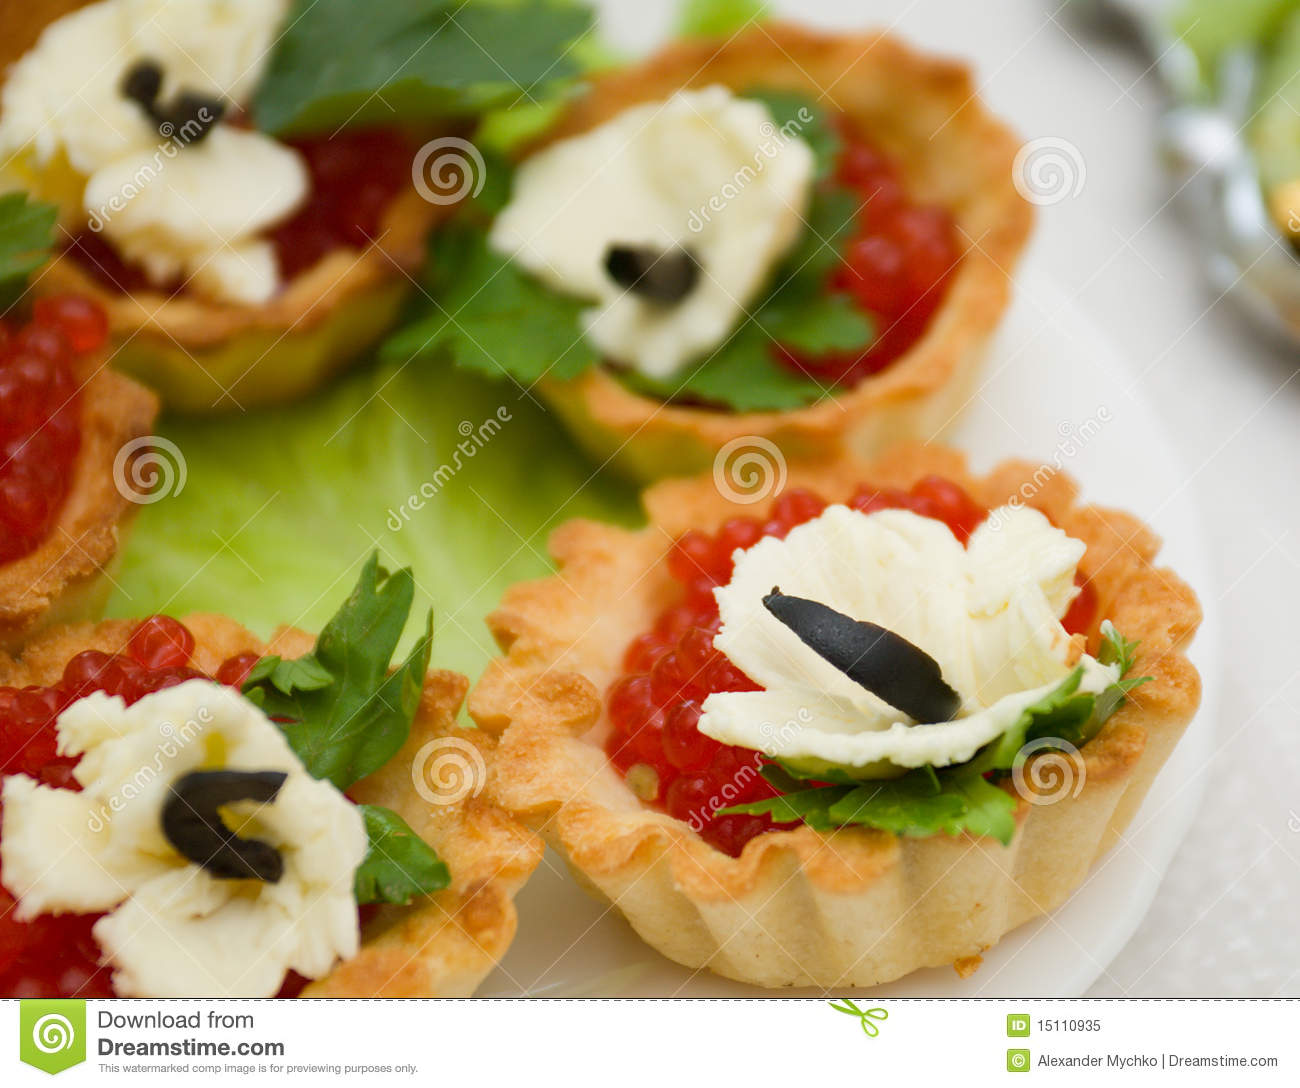 Canapes with red caviar royalty free stock photo image for Canape with caviar